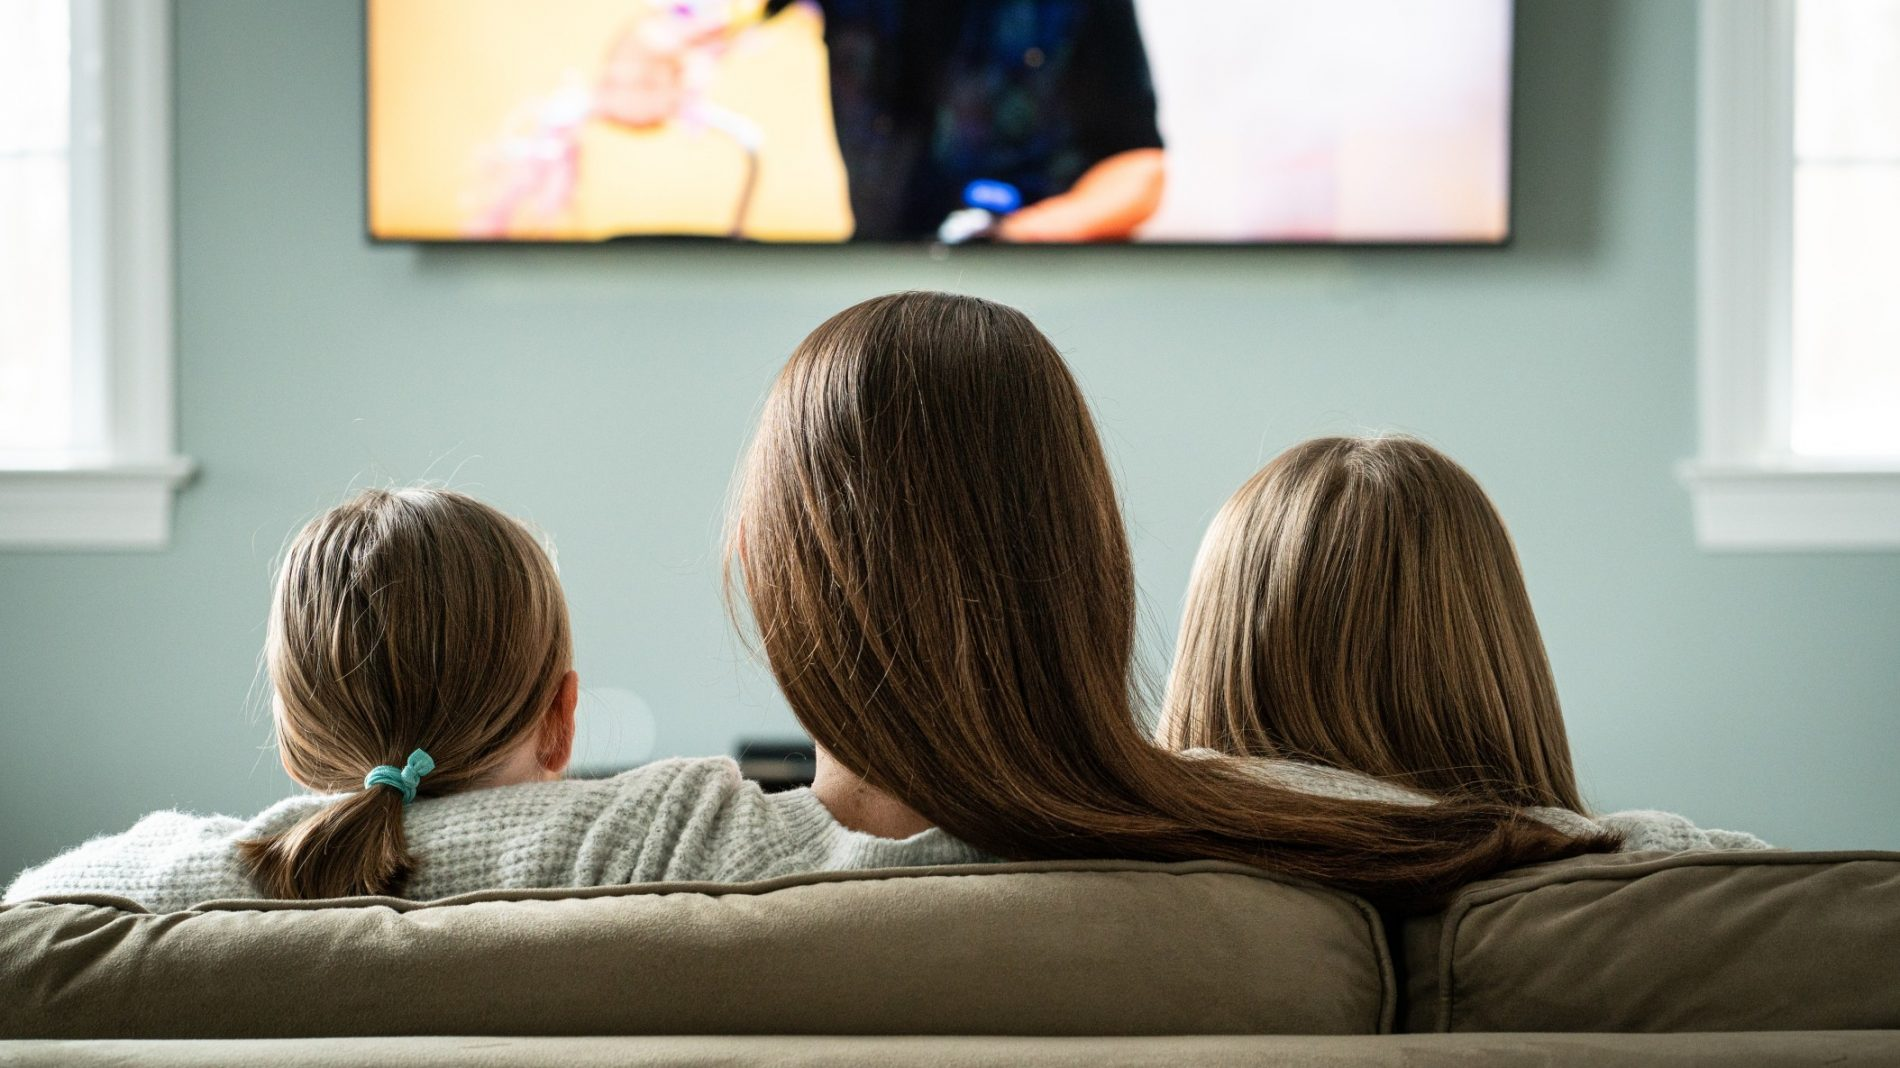 mom-and-daughters-watching-tv-at-home-during-family-time_t20_nRyQLK